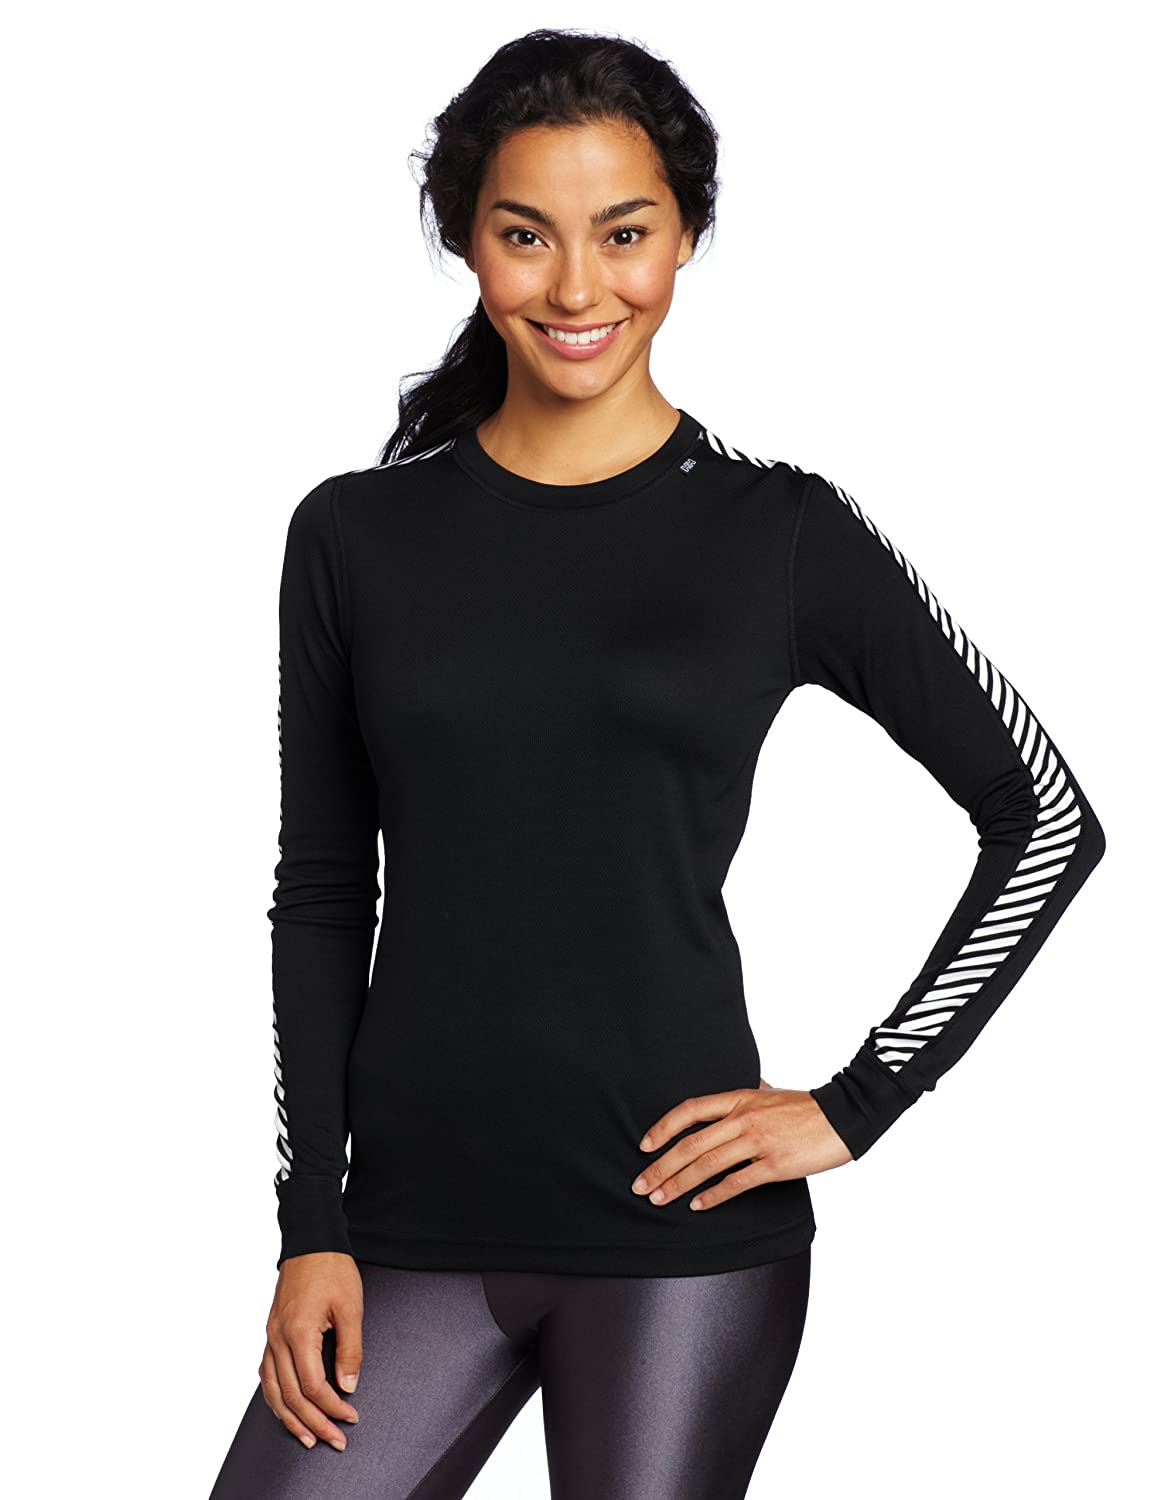 Helly Hansen Ladies Dry Original Base Layer L/S Top Black 48218 Sizes- - XLarge